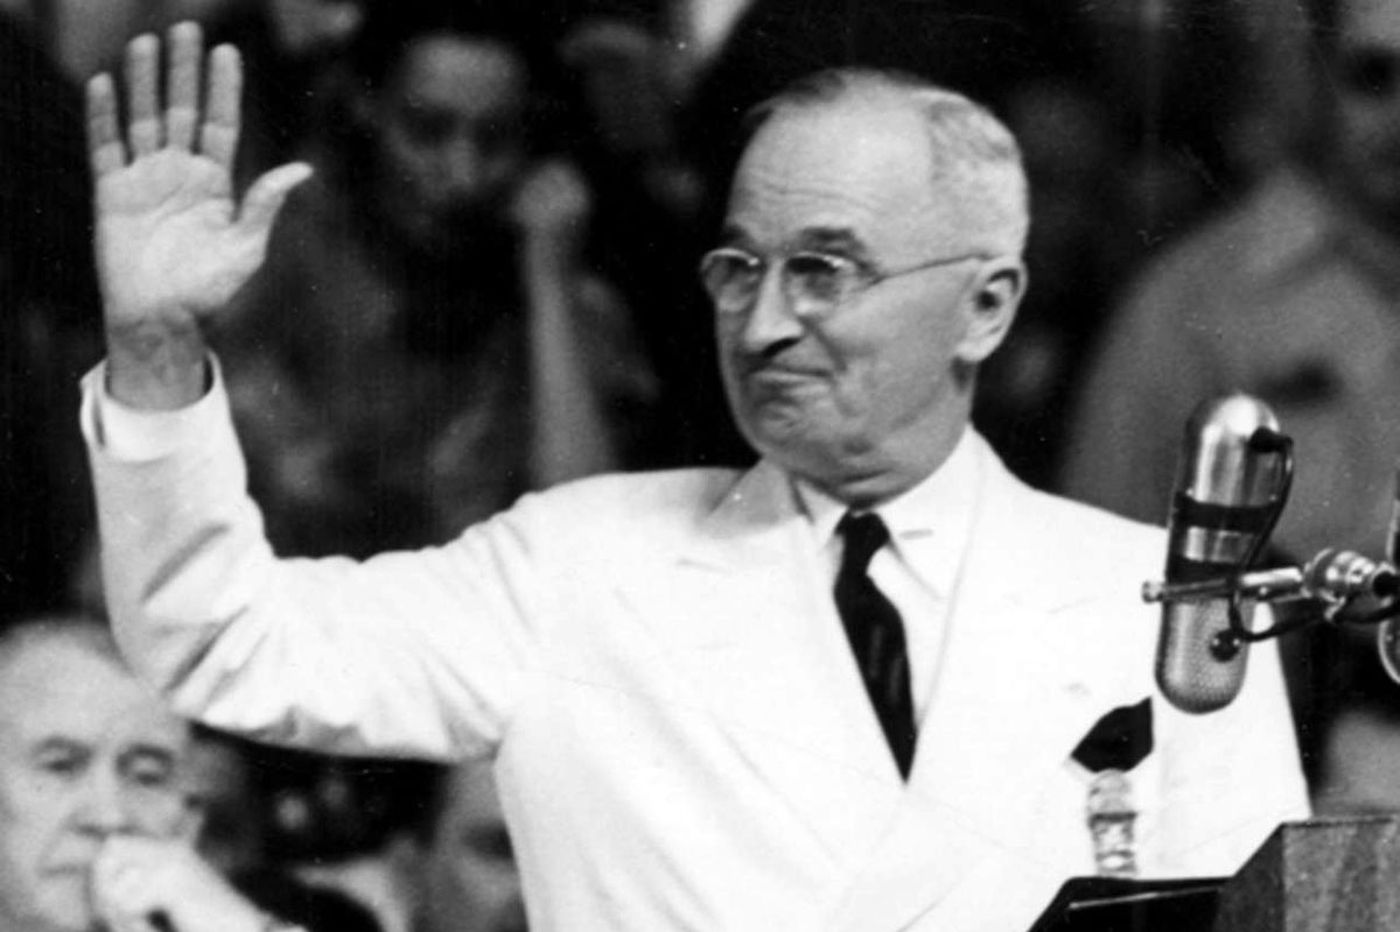 Commentary: Dems made civil-rights history at 1948 convention in Philly